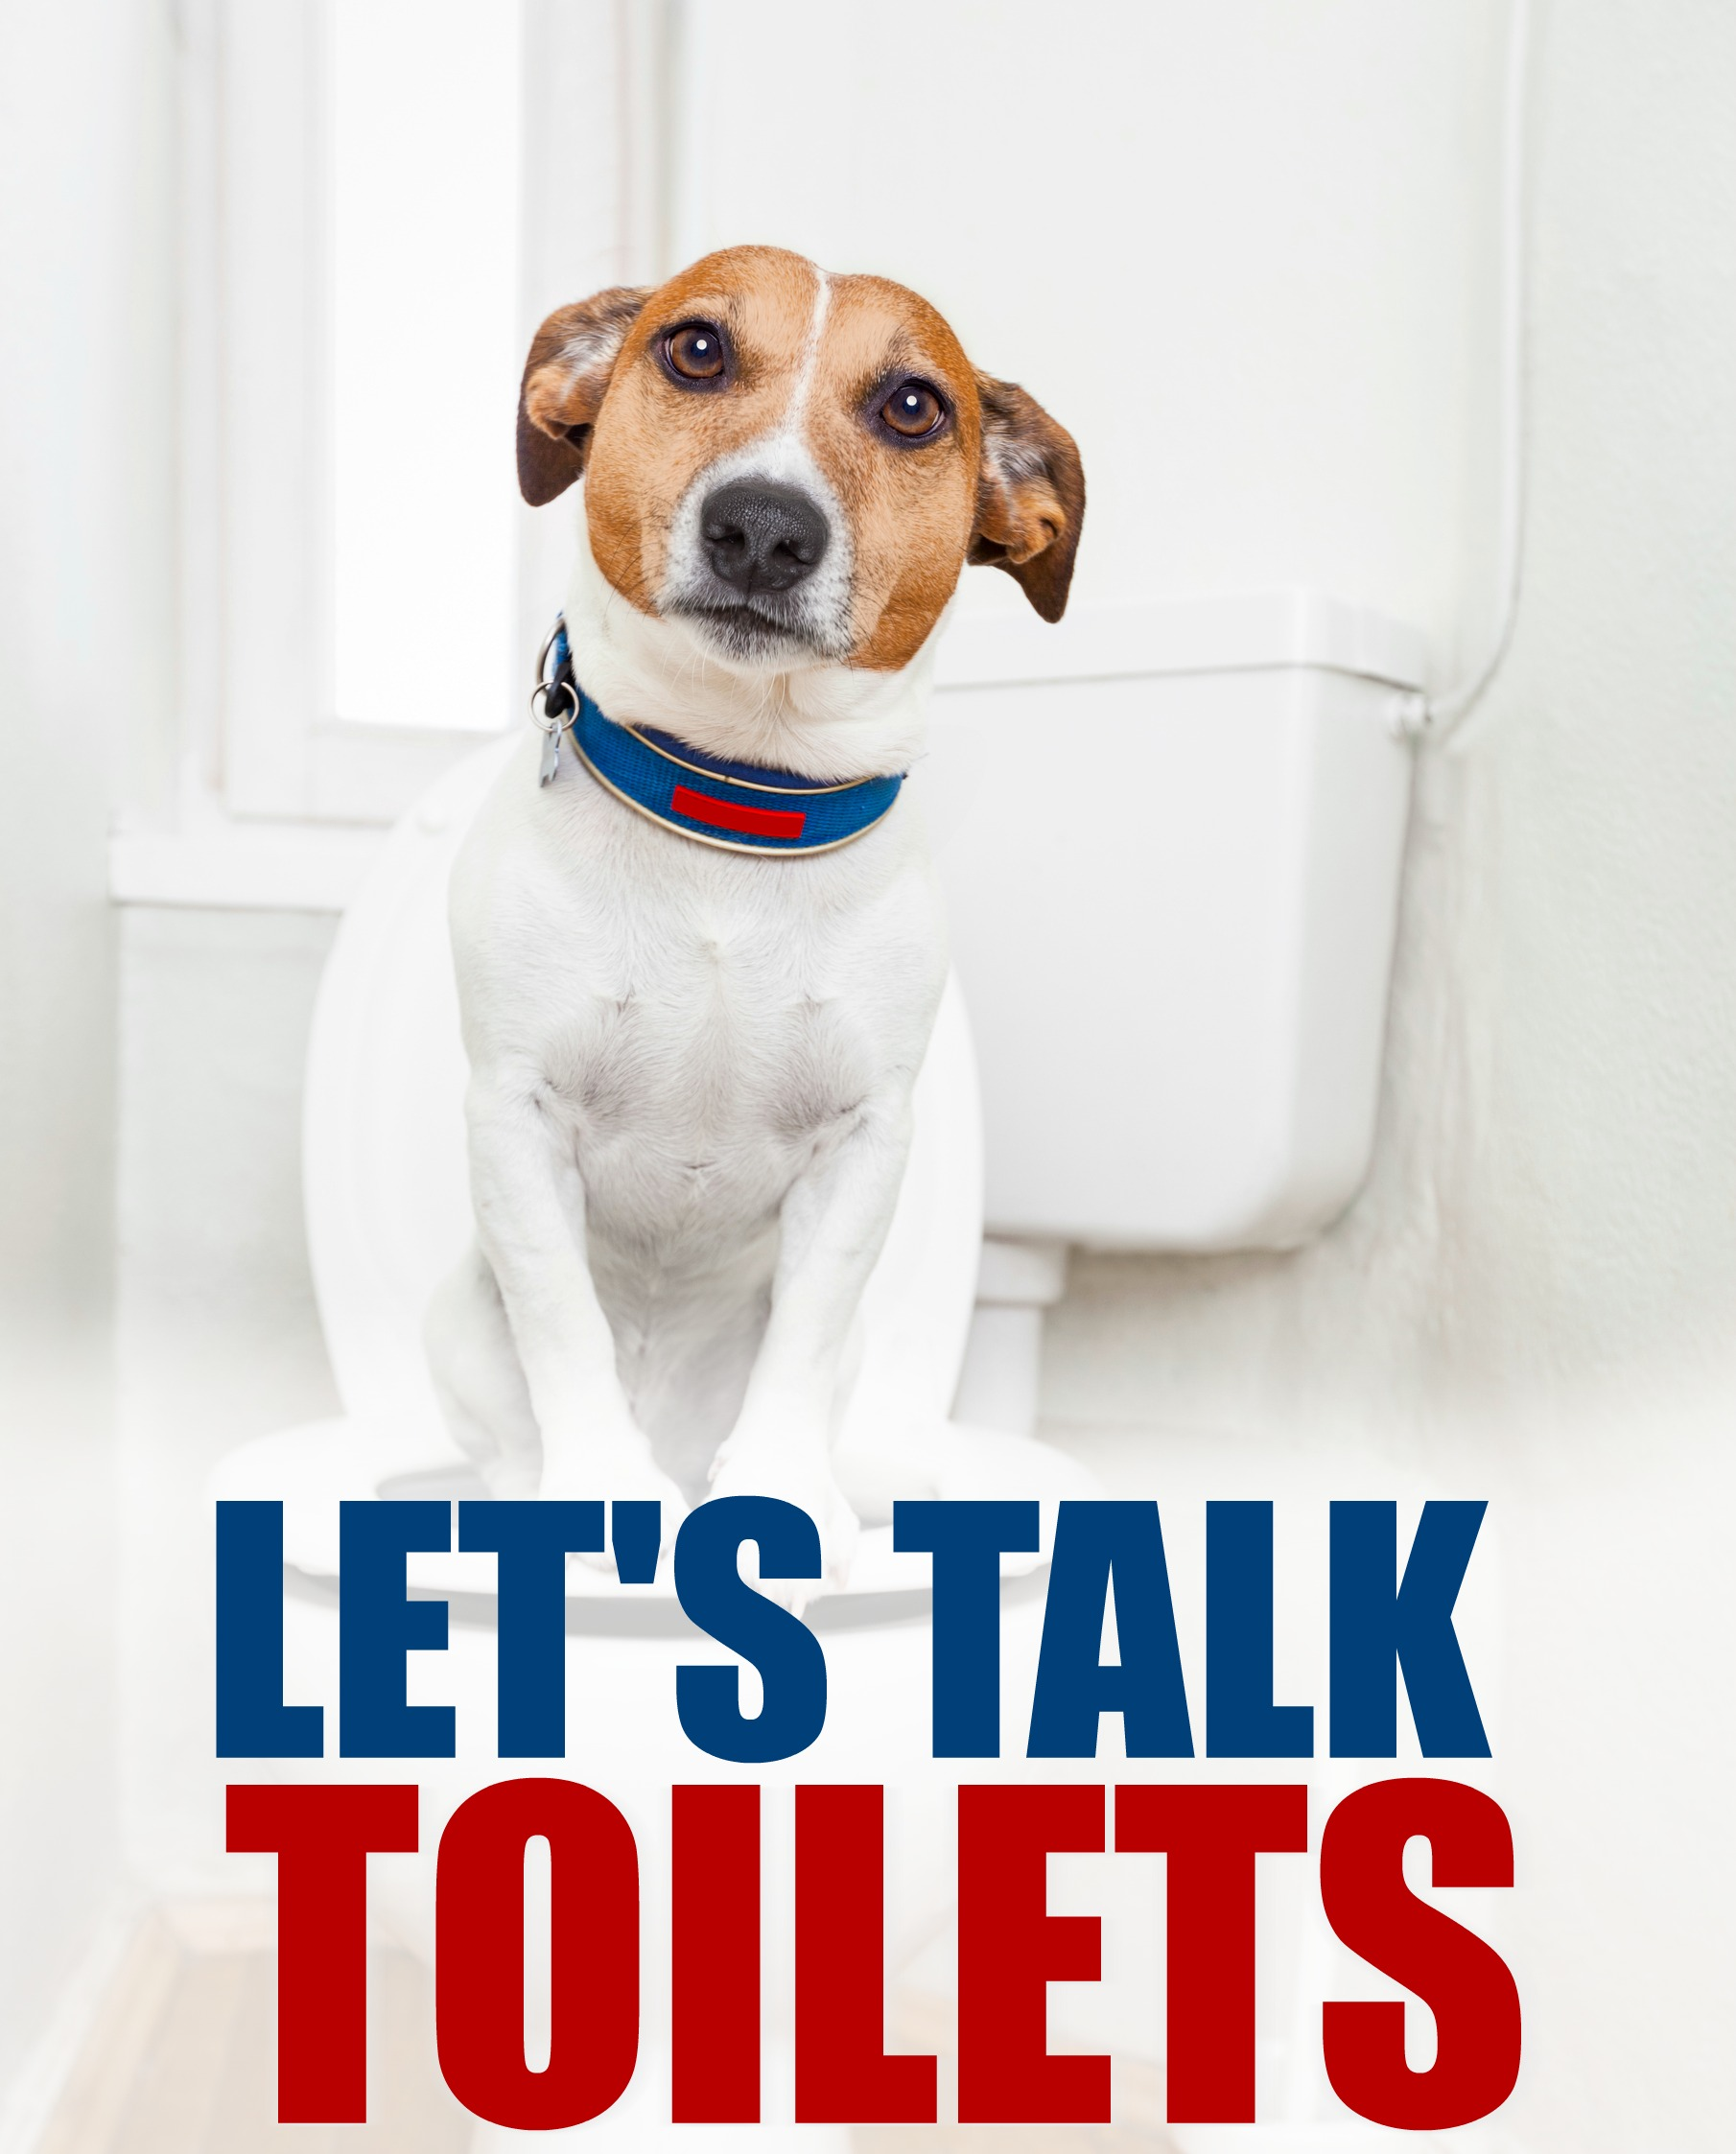 A Casual Talk About Toilets